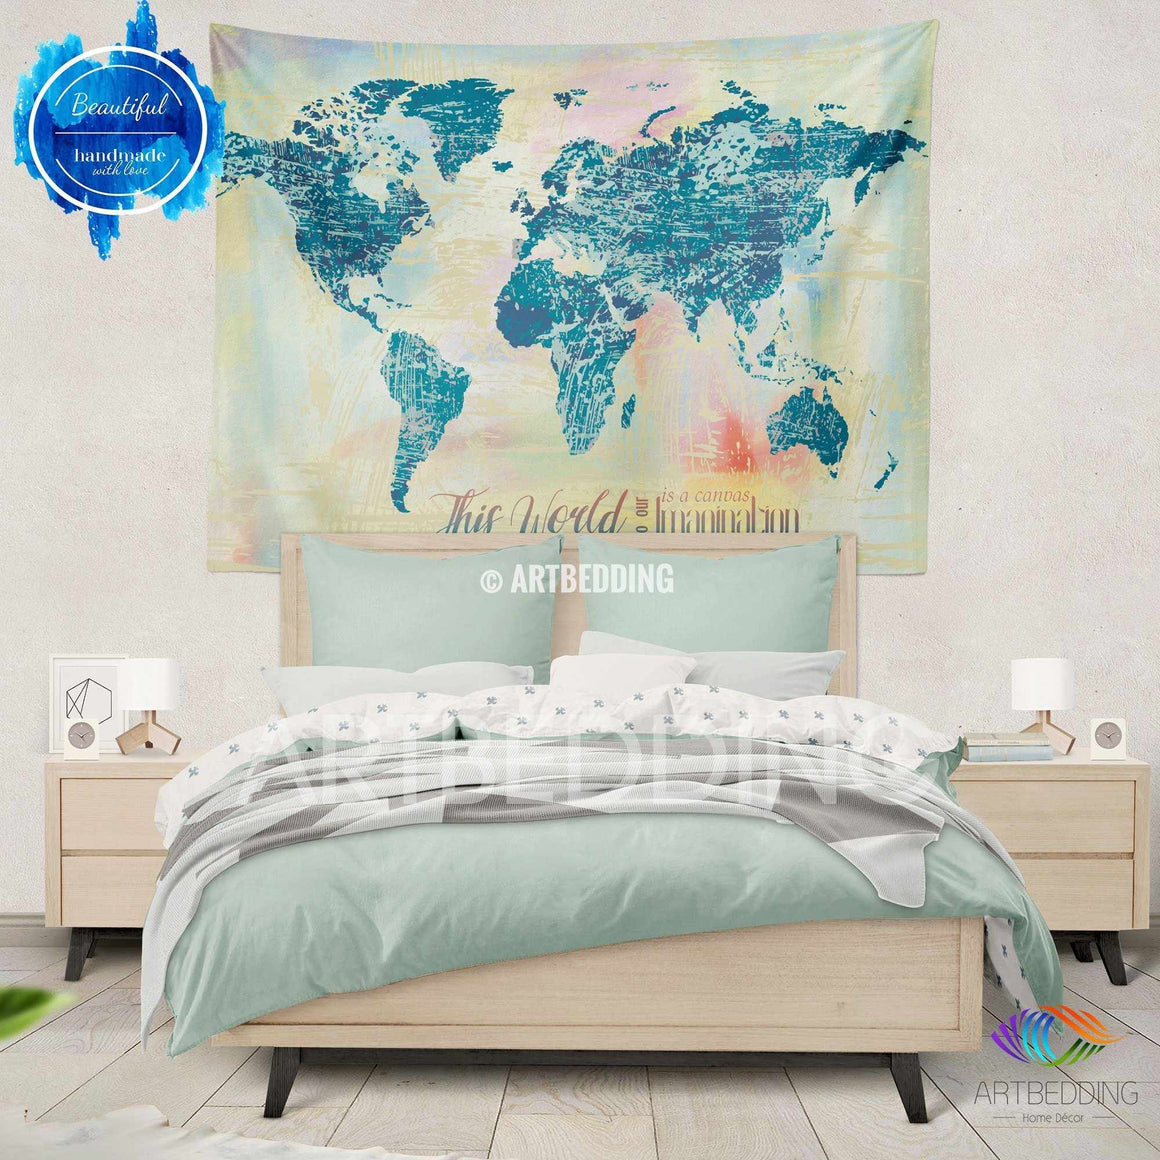 Watercolor World map wall Tapestry, Grunge world map wall tapestry, Hippie tapestry wall hanging, Modern watercolor map tapestries, Watercolor grunge bohemian decor Tapestry